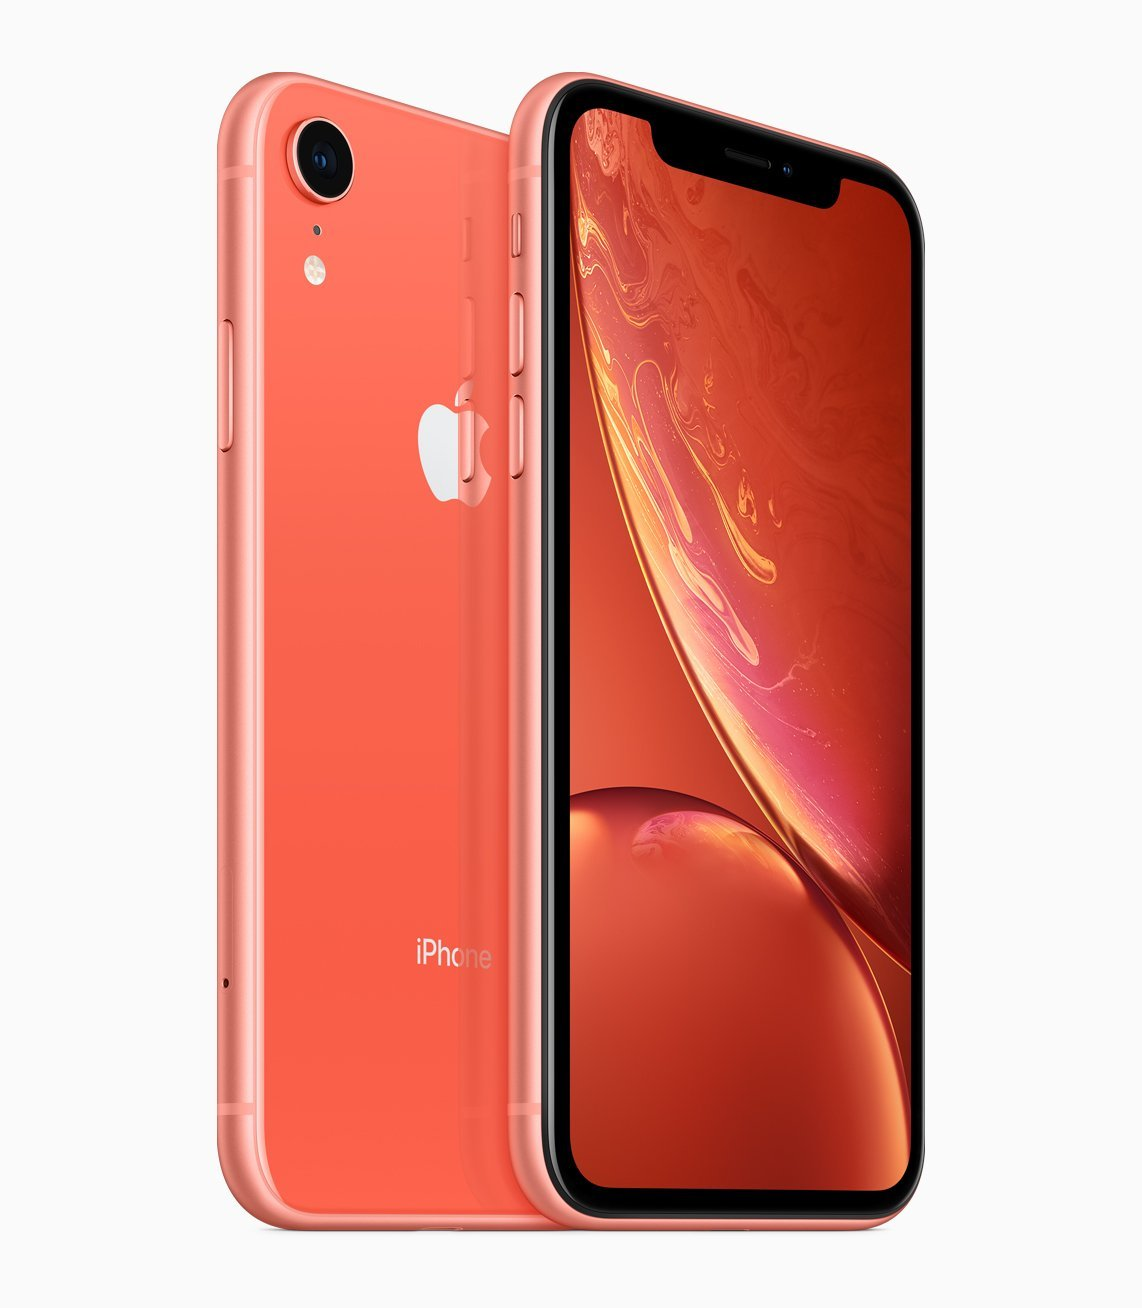 The new iPhone XR in Coral. Image from the Apple Newsroom.